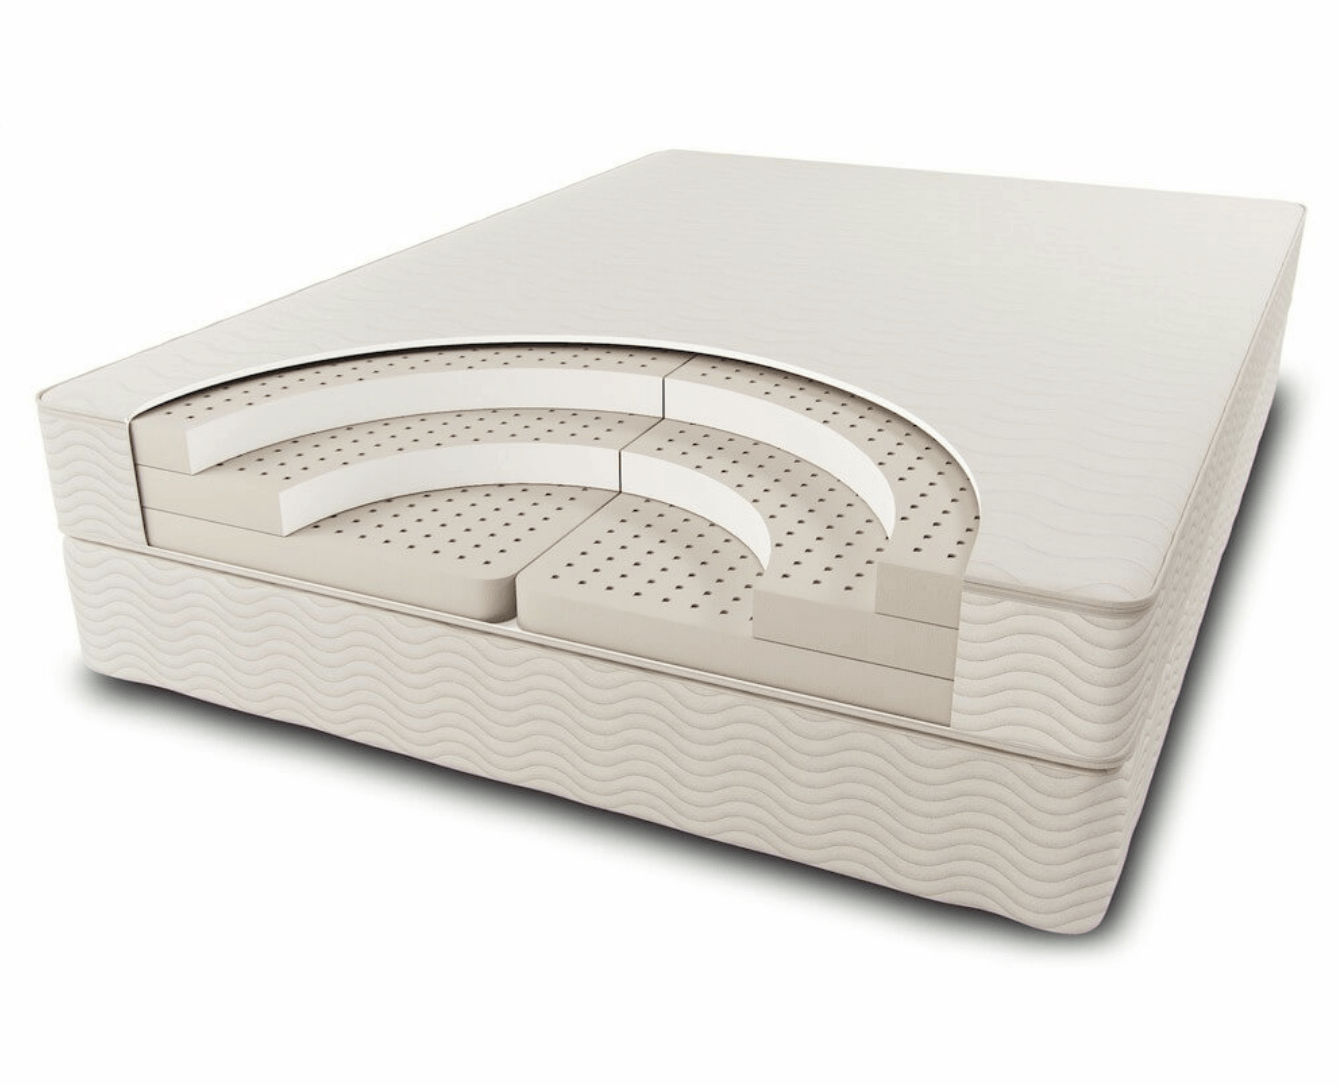 A cross cut visual representation of the Sleep Ez Natural Mattress which shows three layers of latex foam stacked on top of each other which may be split into different firmneses for the two sides of the mattress